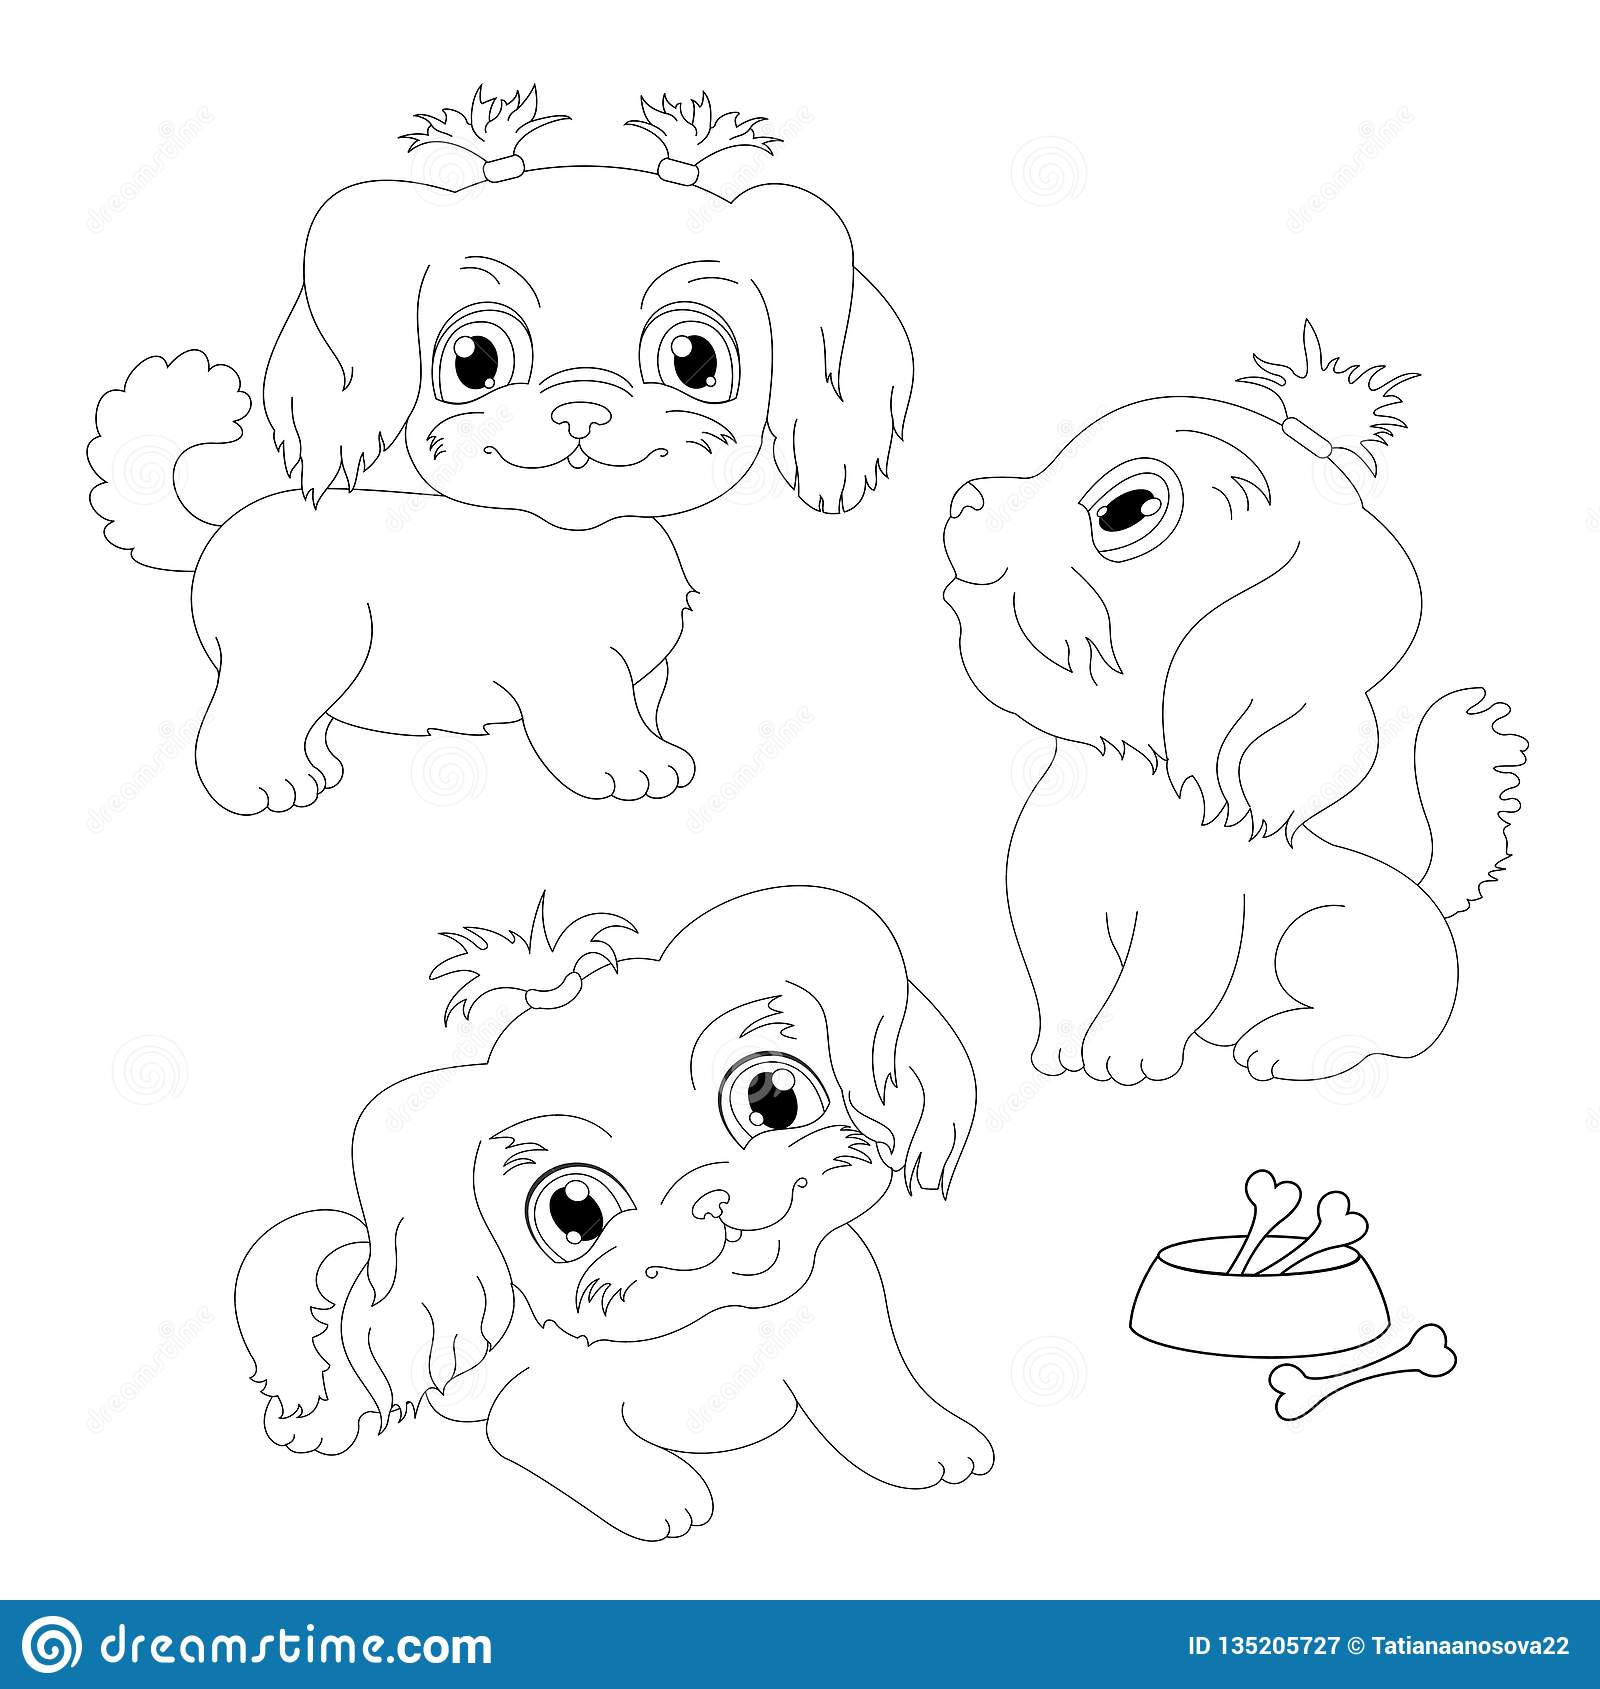 White lap dog. Little dog vector illustration